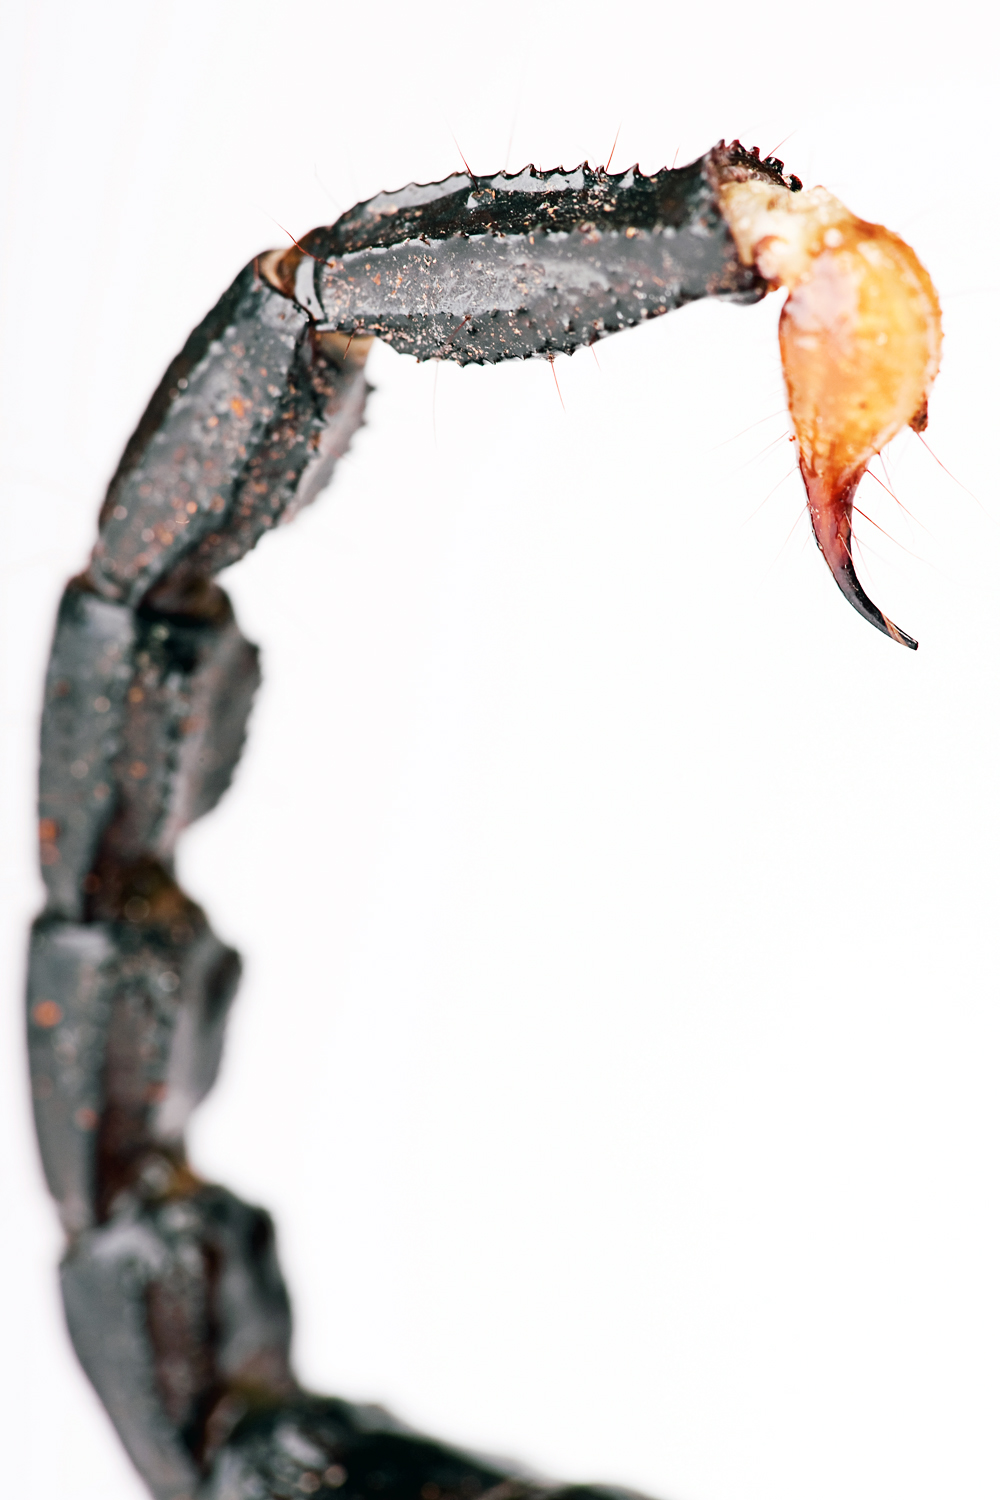 Scorpion tail photo